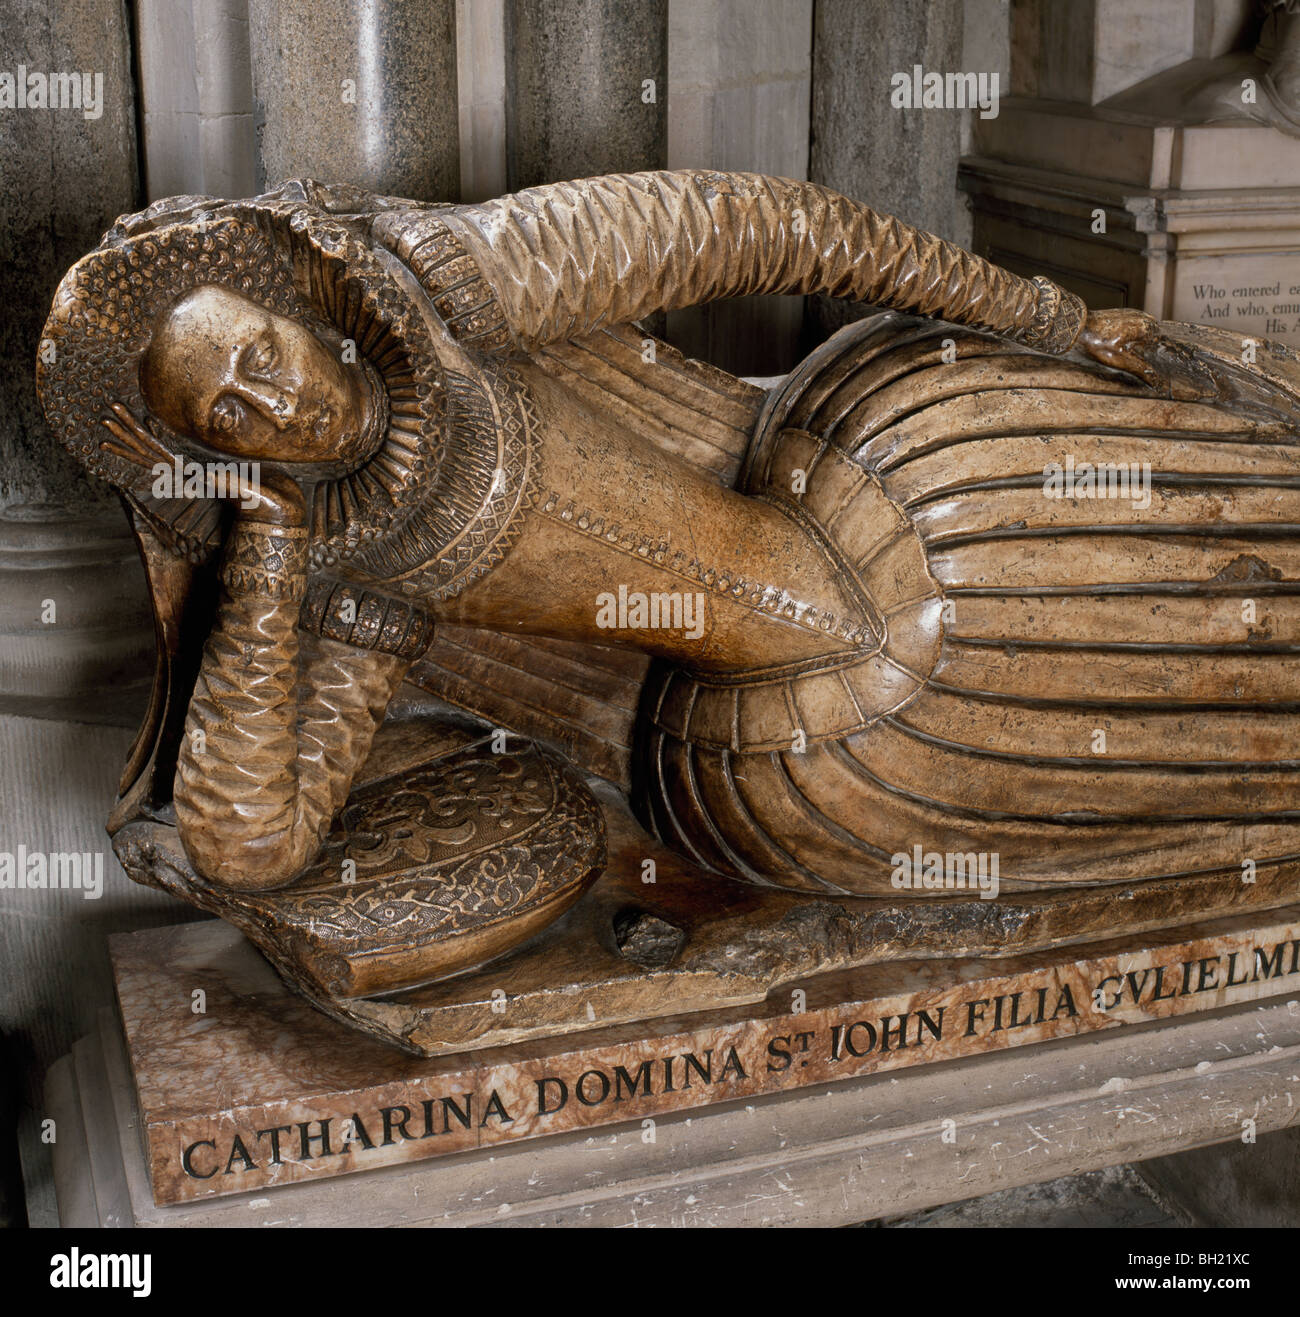 Westminster Abbey monument to Catherine Lady St John of Bletson d.1615. Alabaster and marble - Stock Image